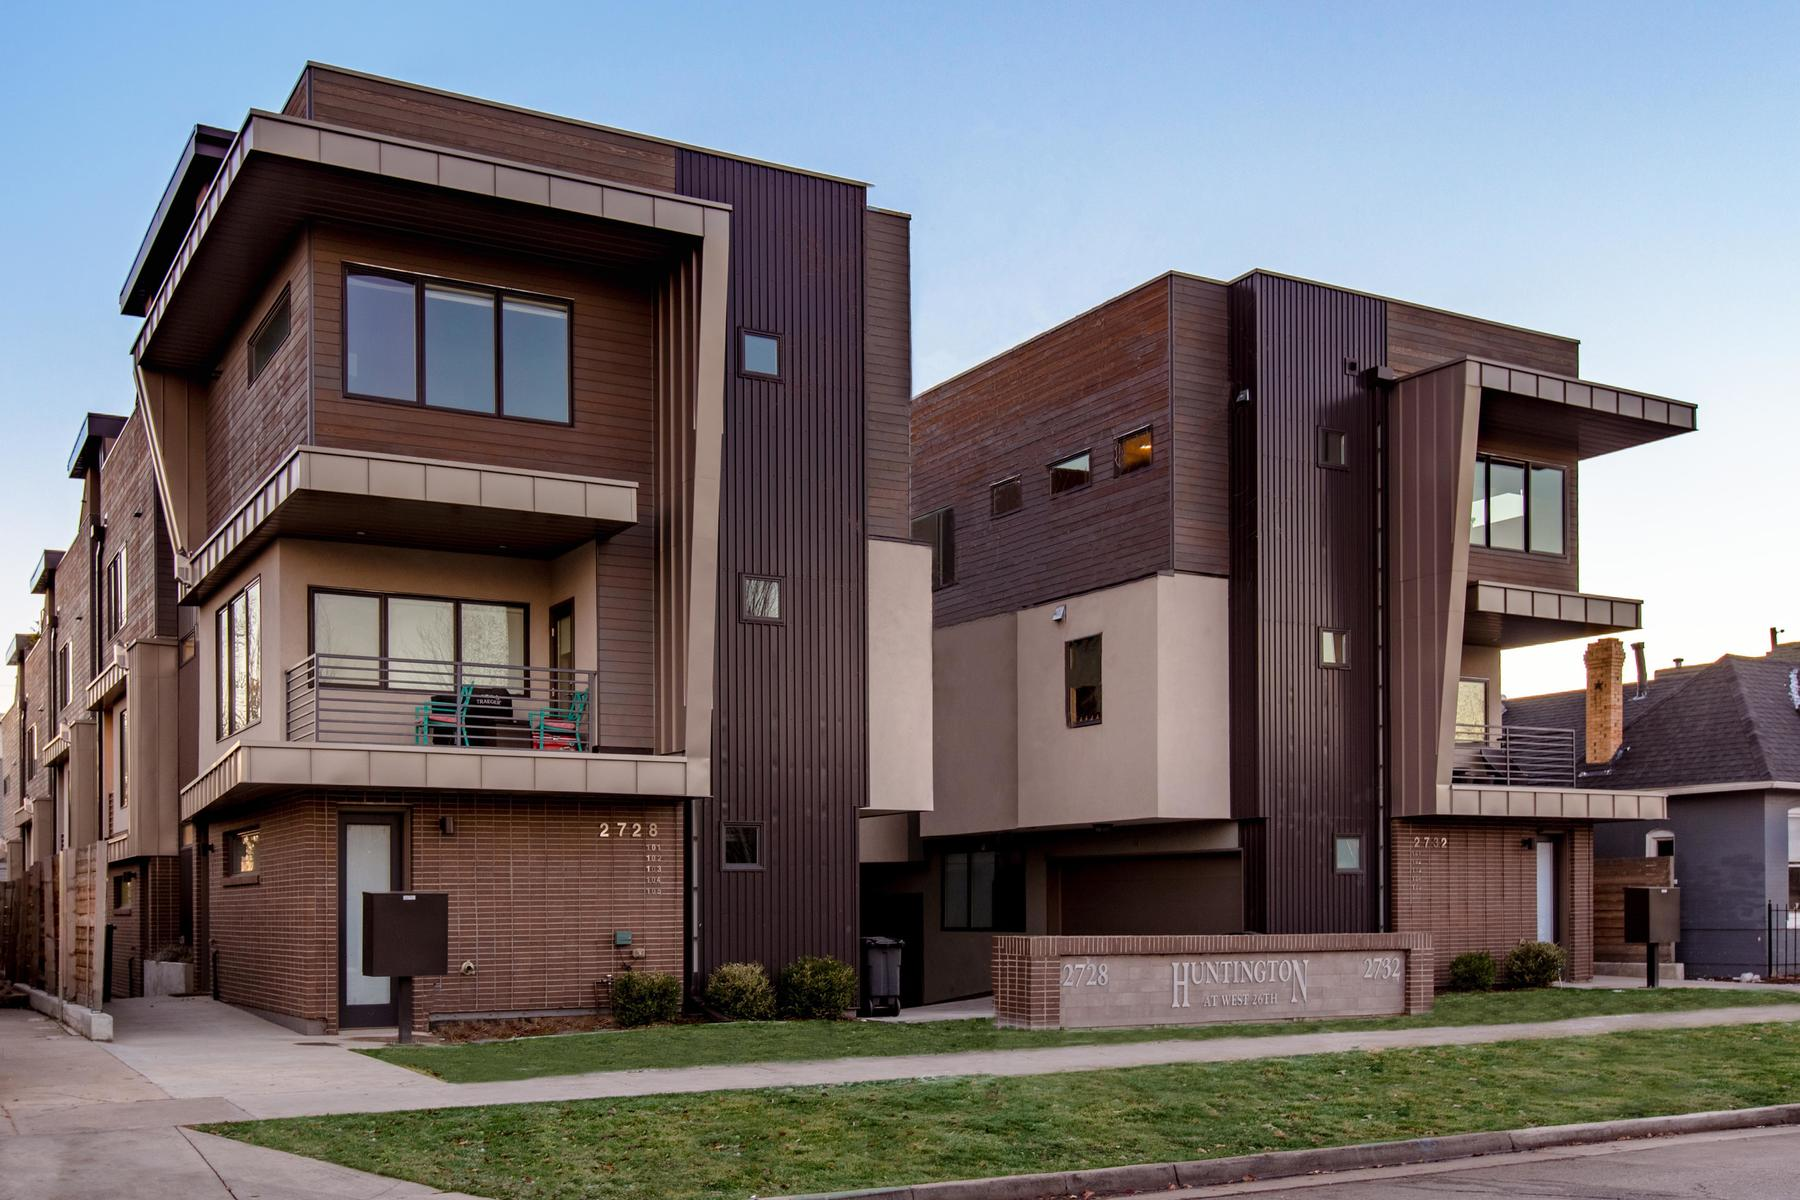 Townhouse for Active at This is the upscale Jefferson Park townhome you've been awaiting 2728 W 26th Ave #102 Denver, Colorado 80211 United States